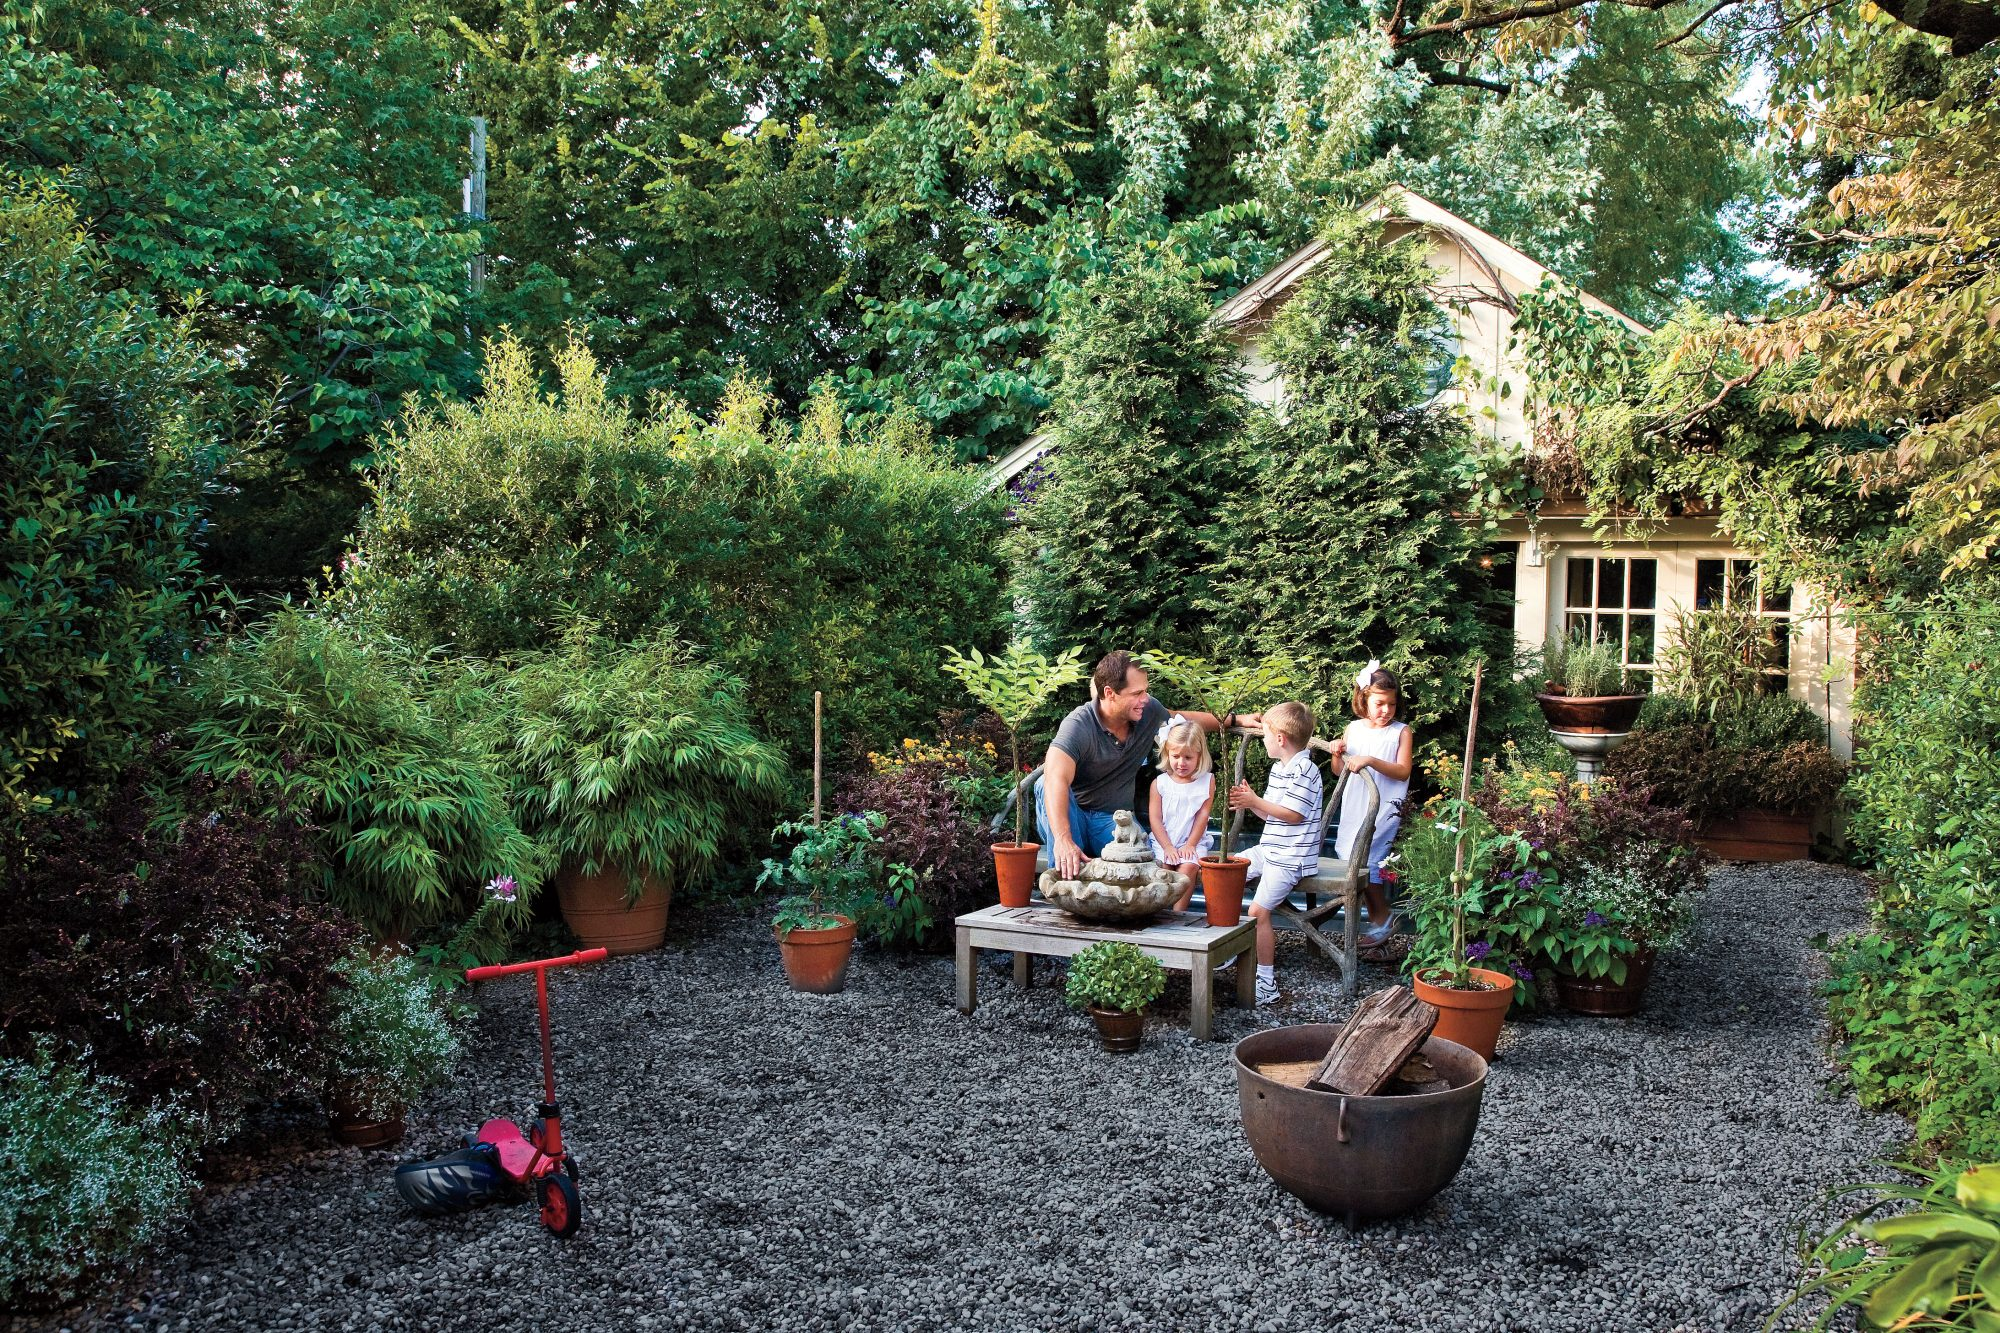 Graveled Courtyard. Budget Friendly Backyard Landscaping: Graveled Courtyard